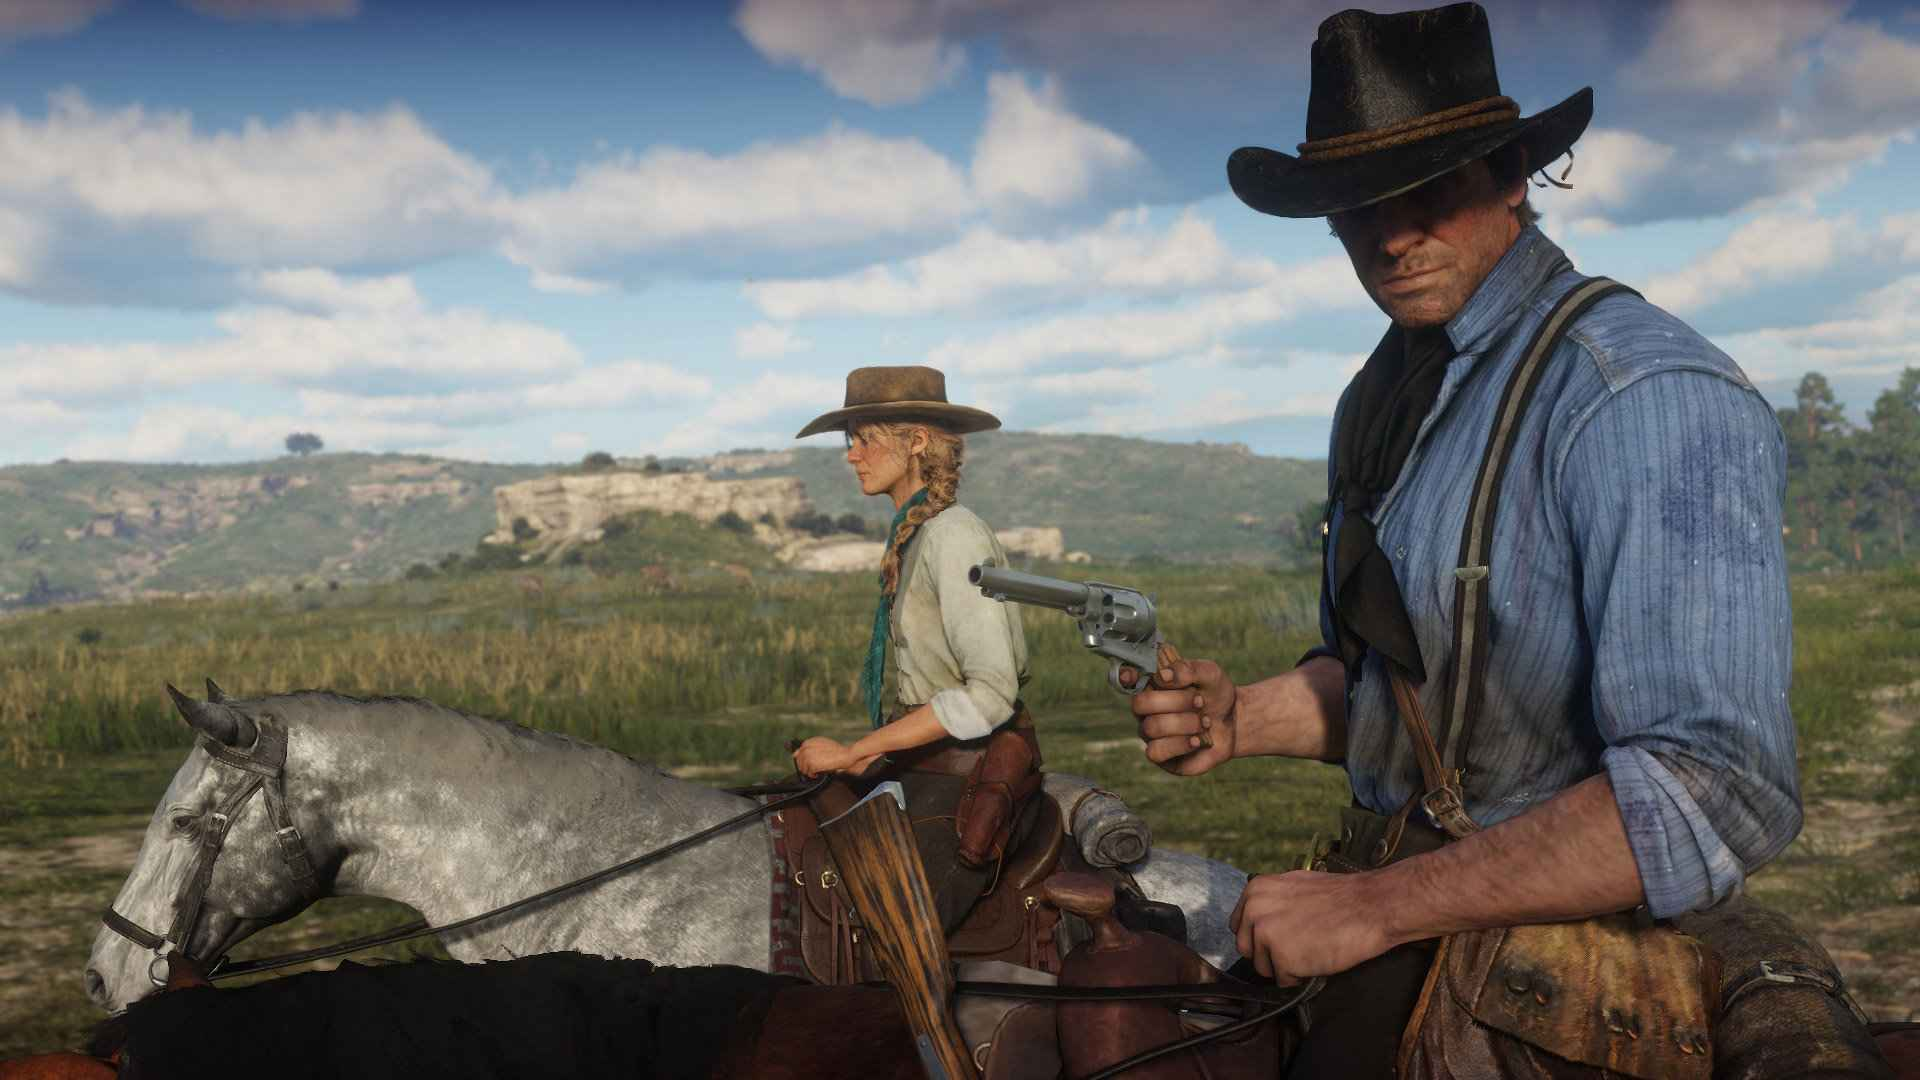 Red Dead Redemption 2 Gameplay Video Scheduled for this Week